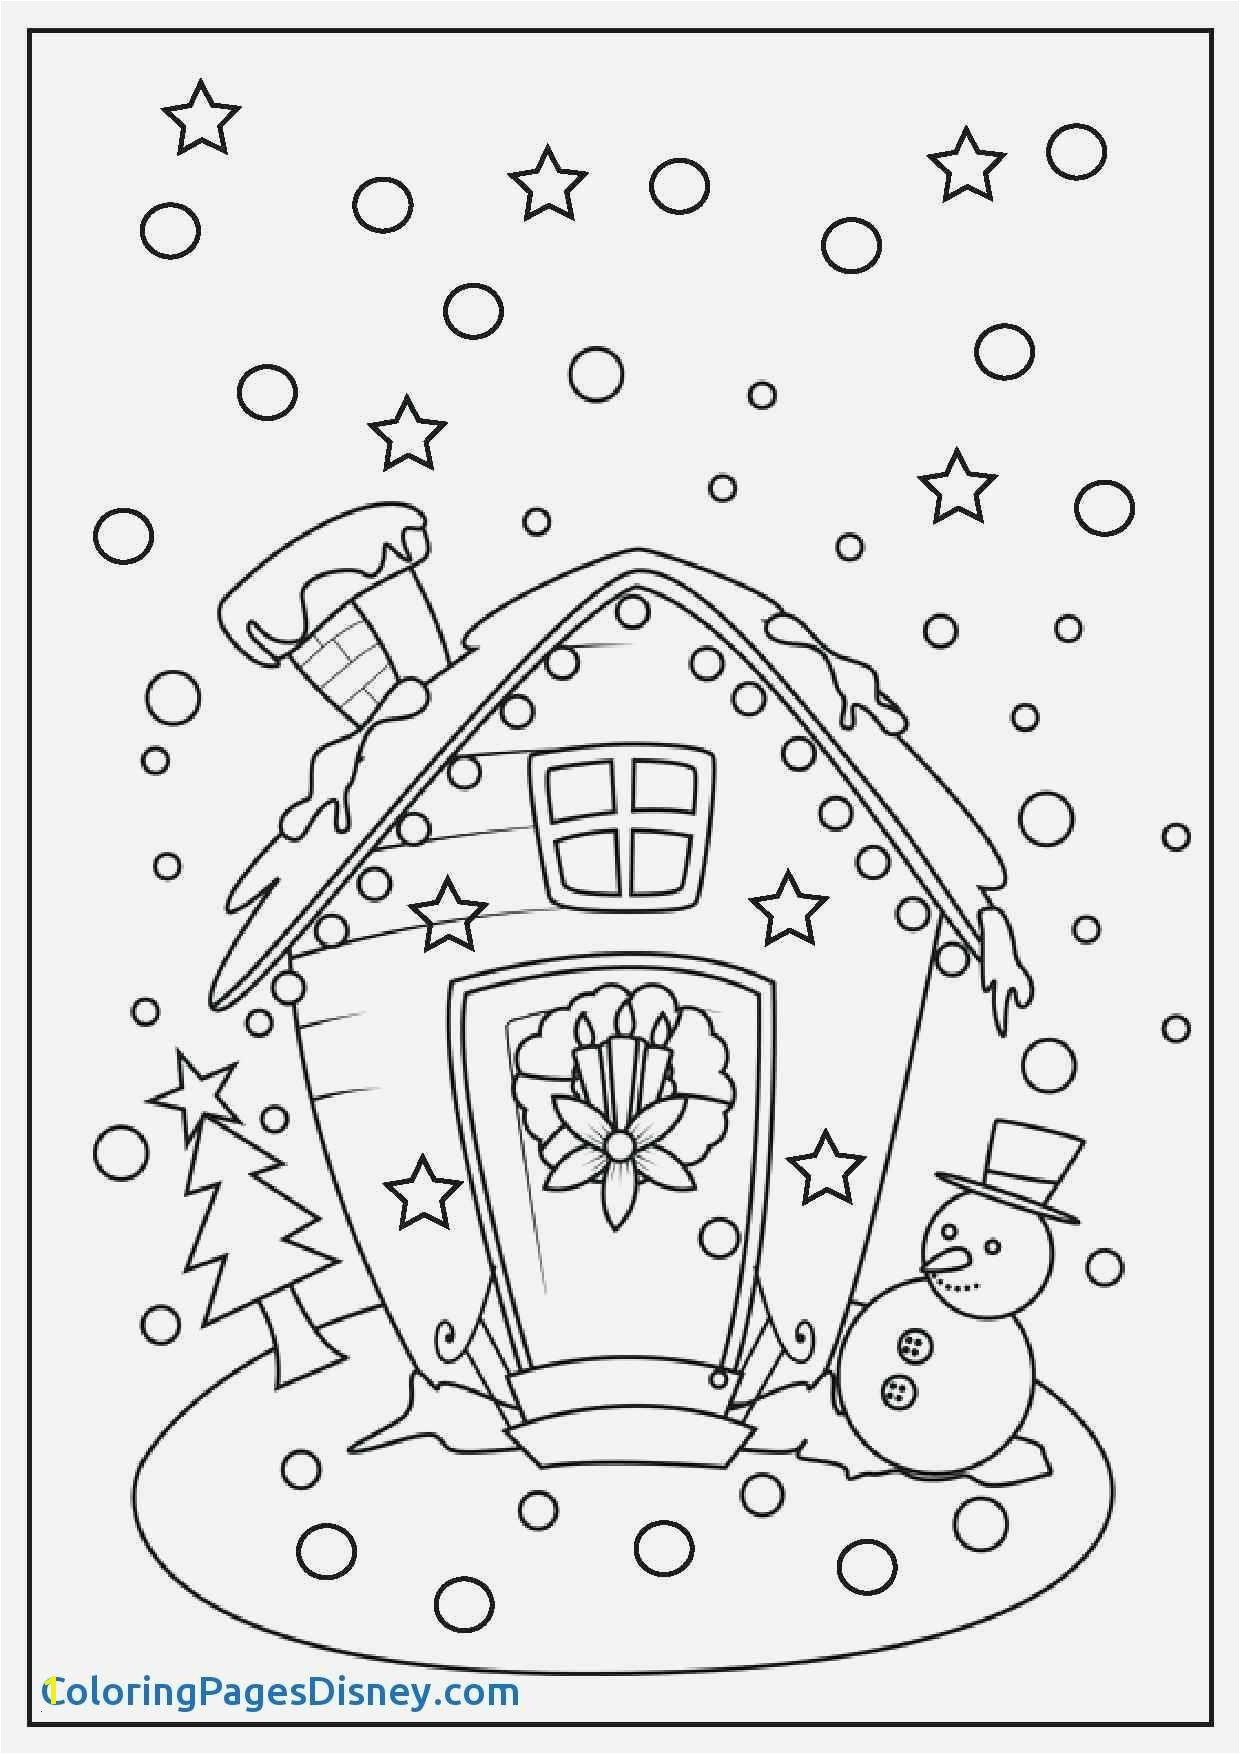 Girl soccer Player Coloring Pages Printable Coloring Pages Numbers Archives Katesgrove